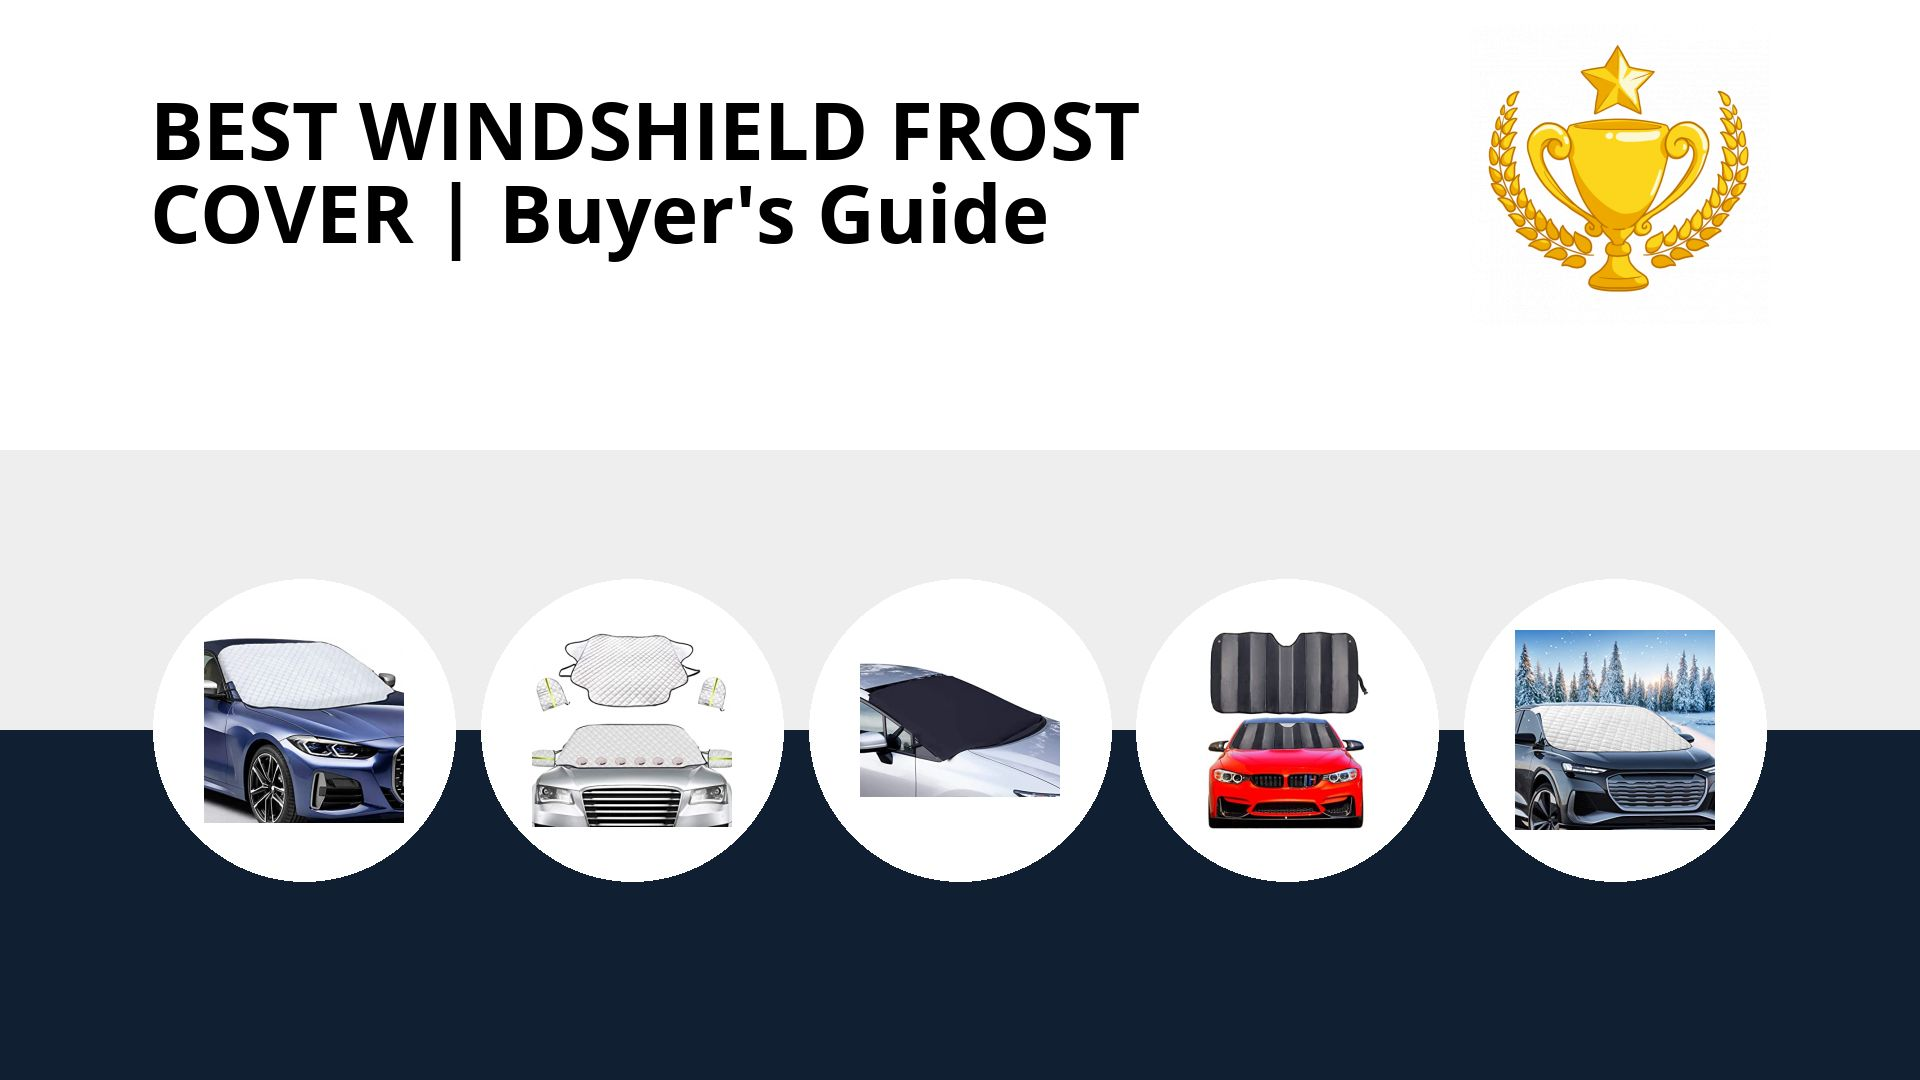 Best Windshield Frost Cover: image